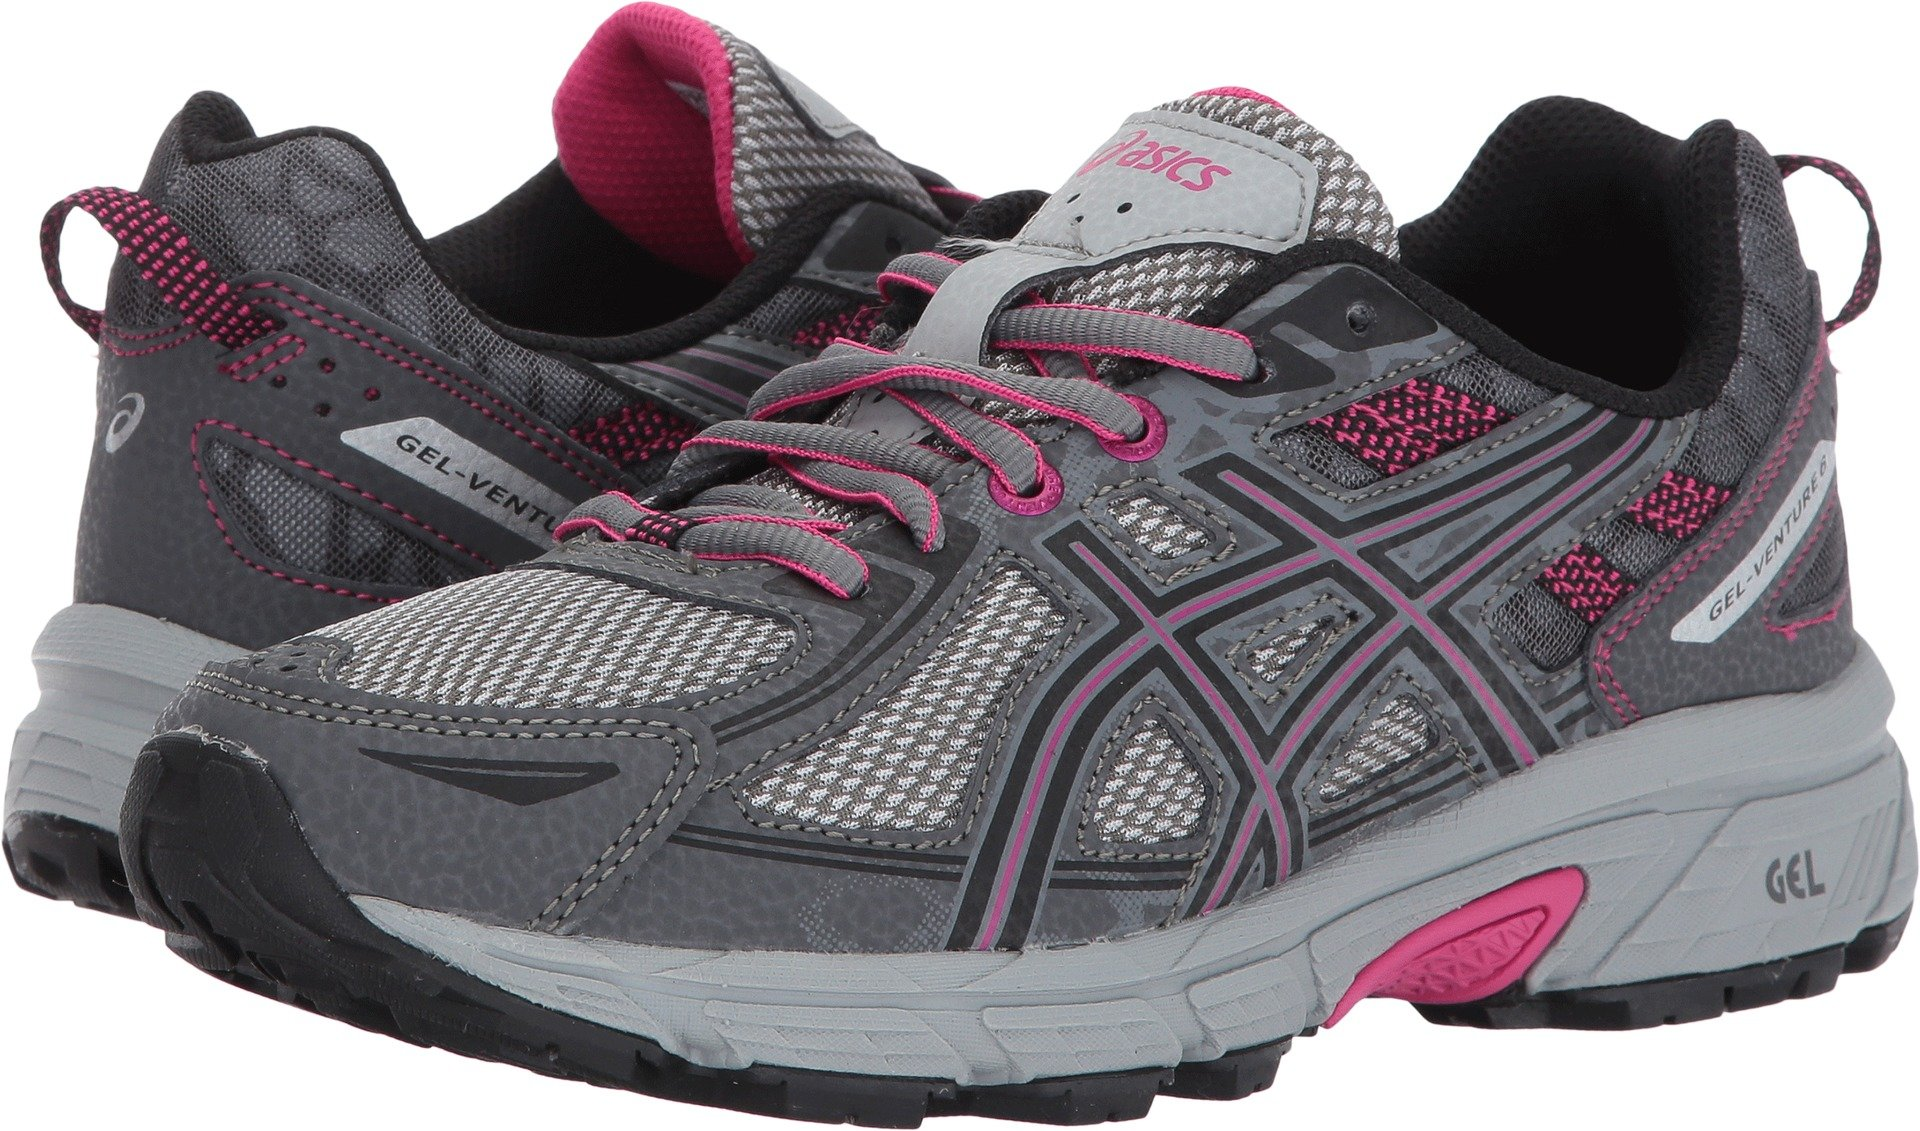 ASICS Women's Gel-Venture 6 Running-Shoes,Carbon/Black/Pink Peacock,5 D US by ASICS (Image #1)